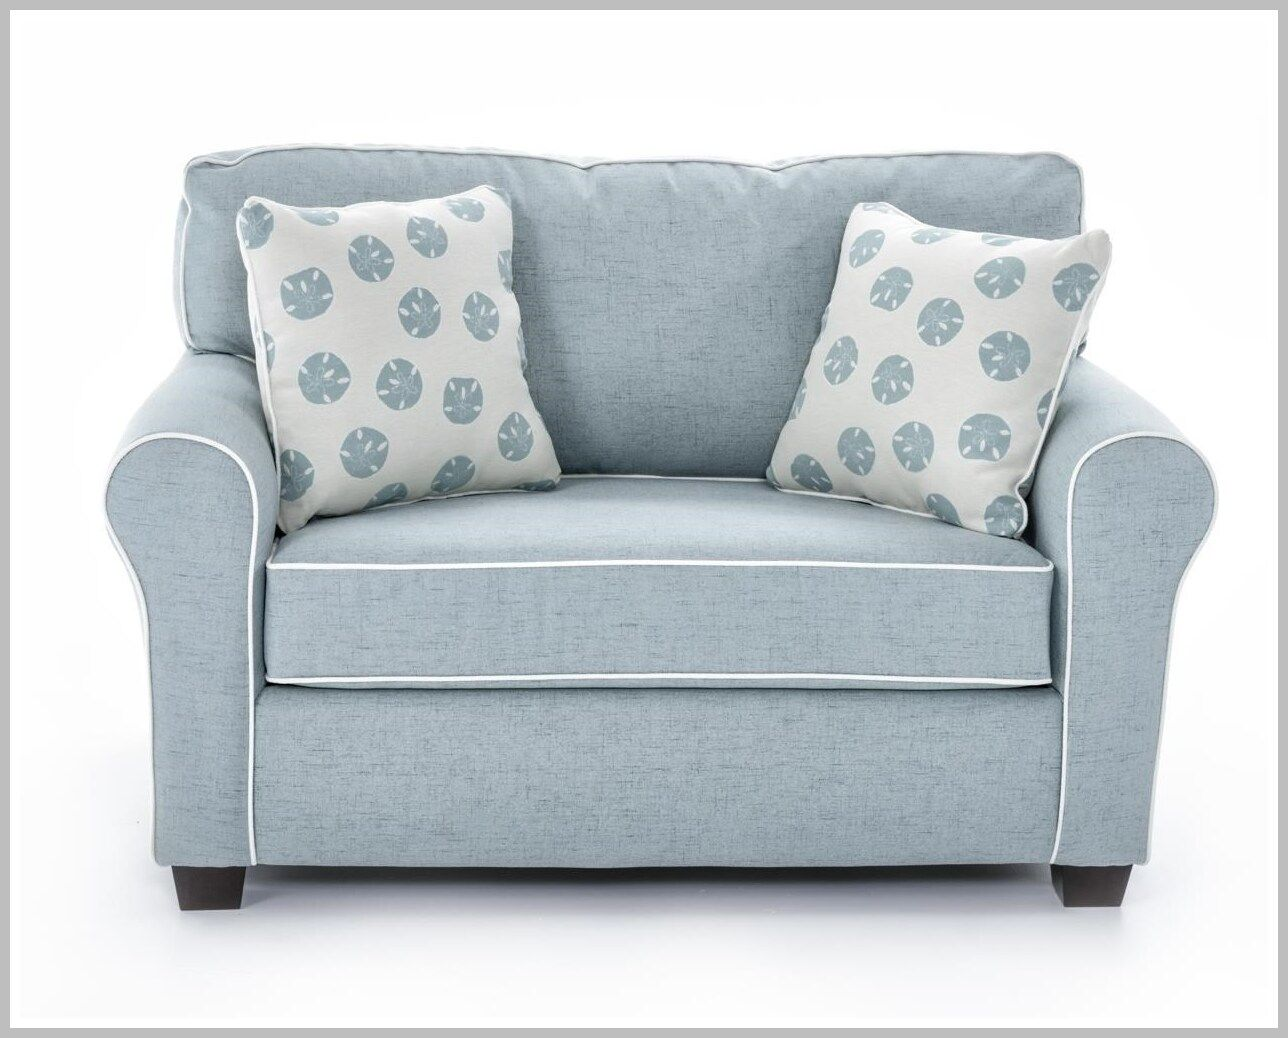 44 Reference Of Sofa Bed Twin In 2020 Sleeper Sofa Twin Sleeper Sofa Sofa Bed